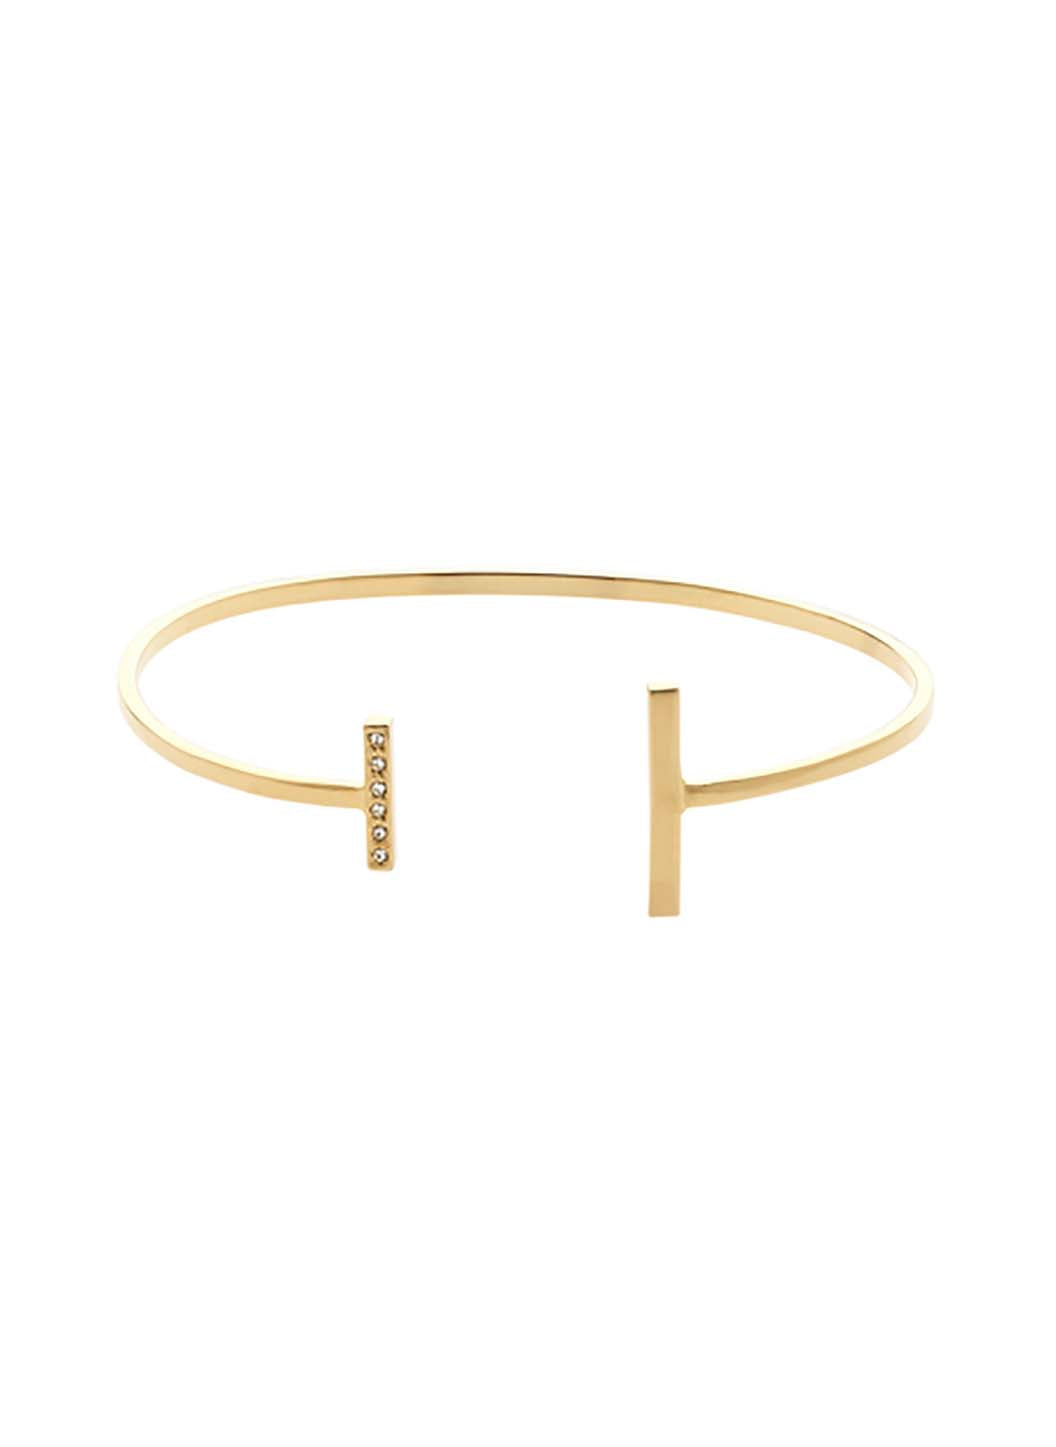 Gold Swarovski T Bar Bangle